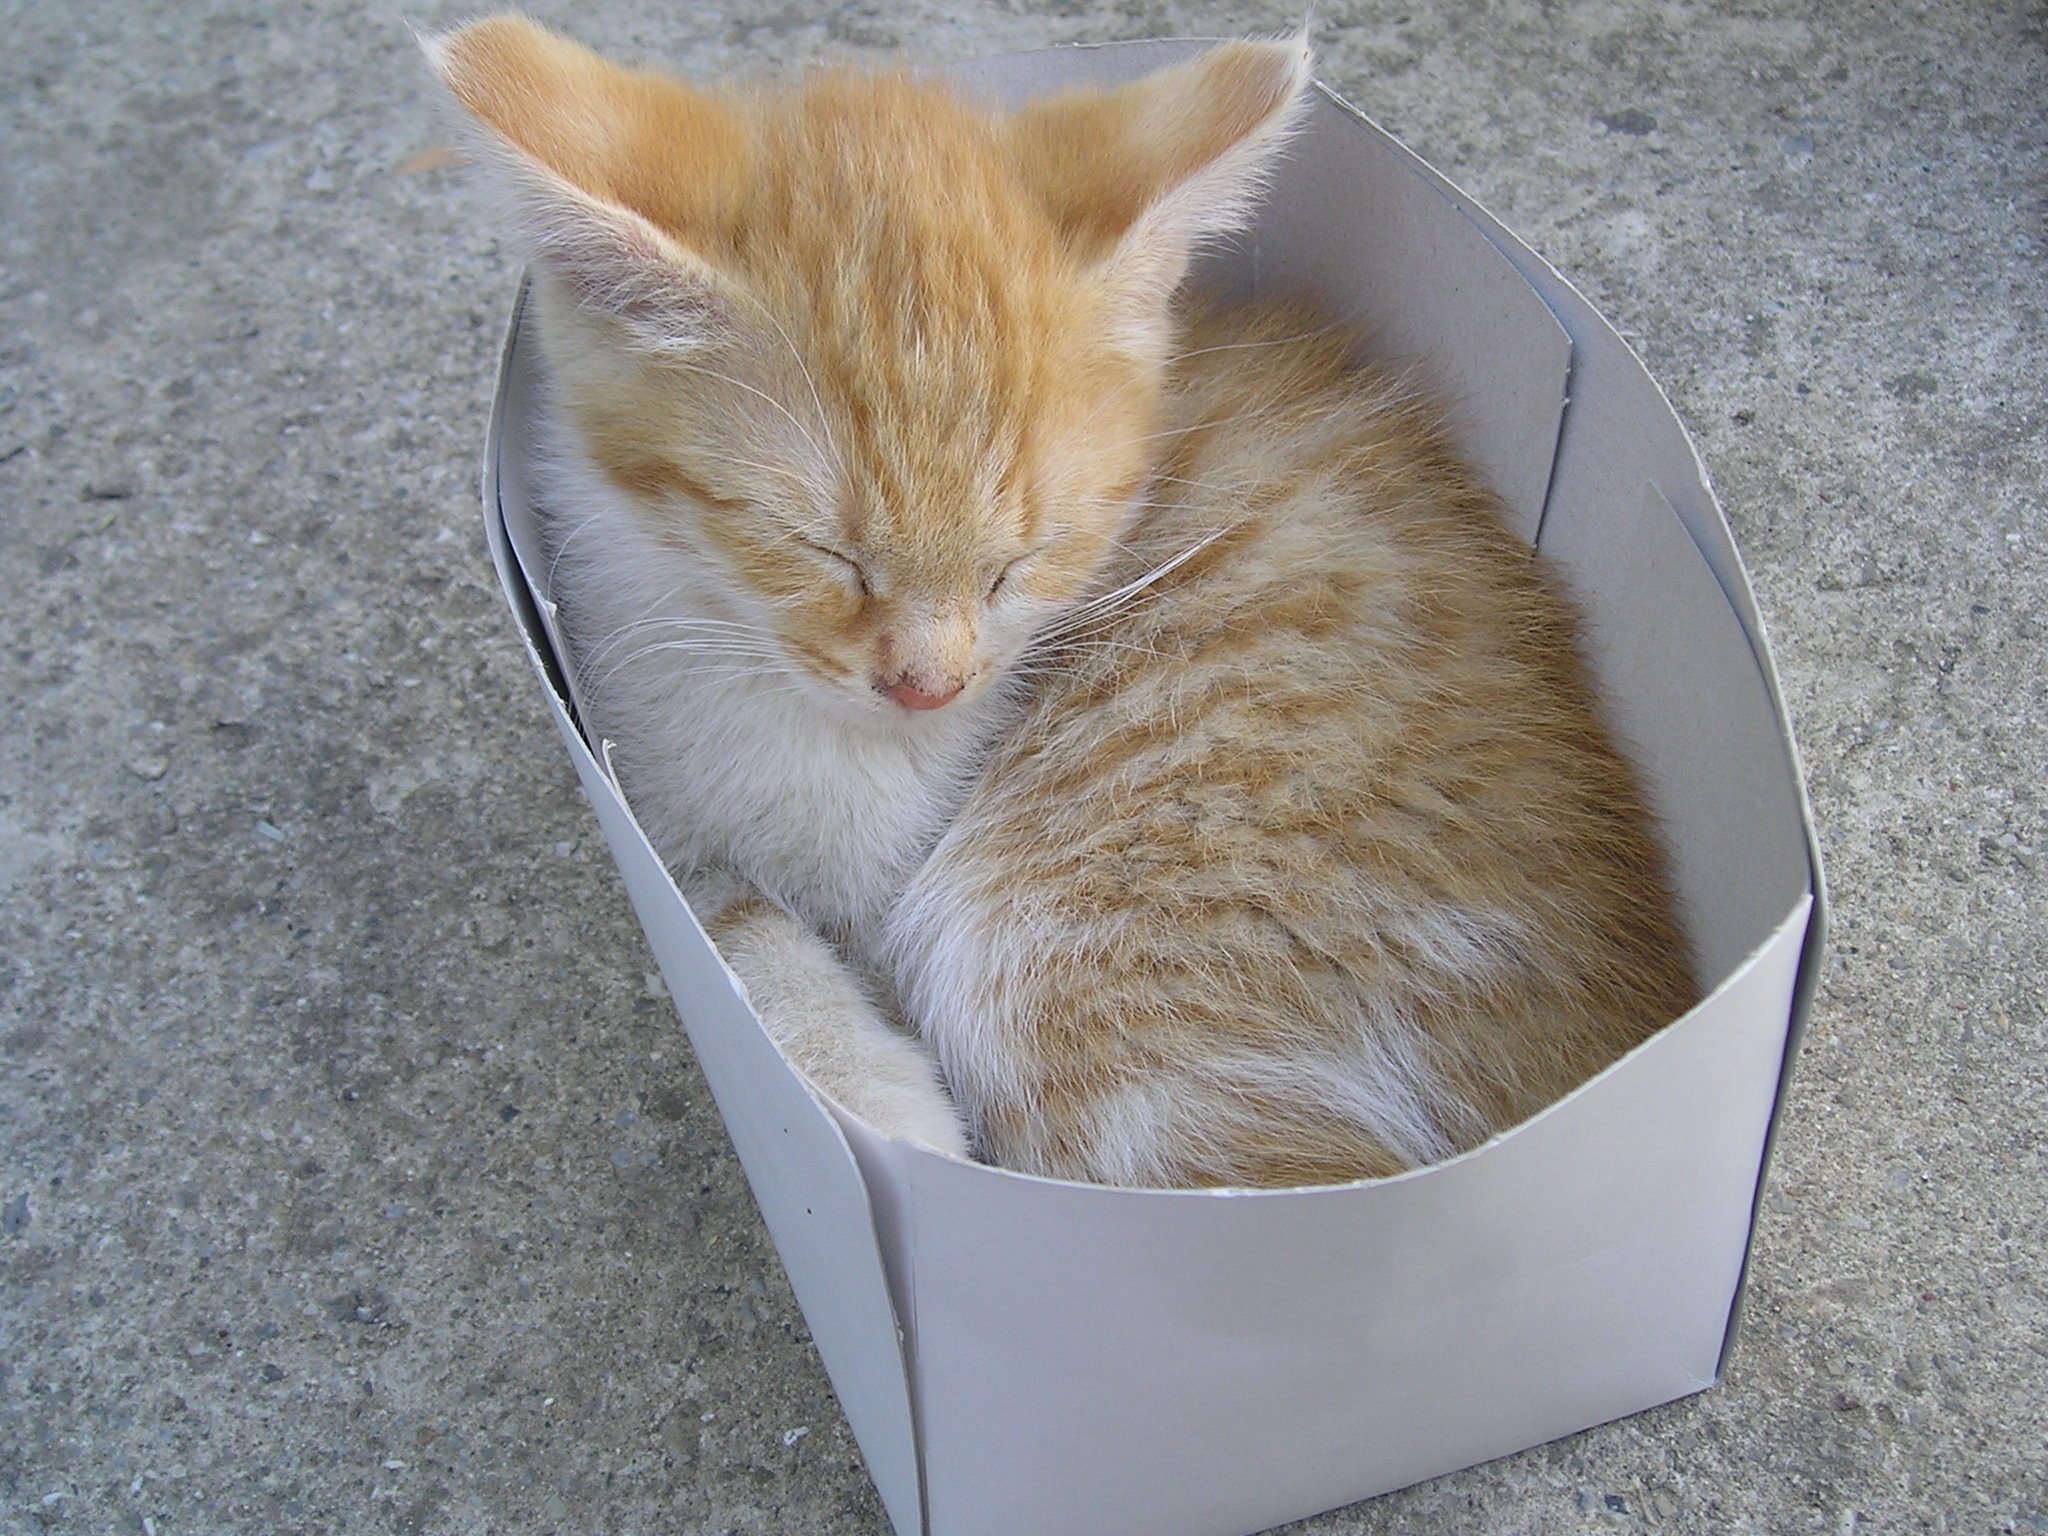 Gattilicious  =^.^= Cat_into_the_box